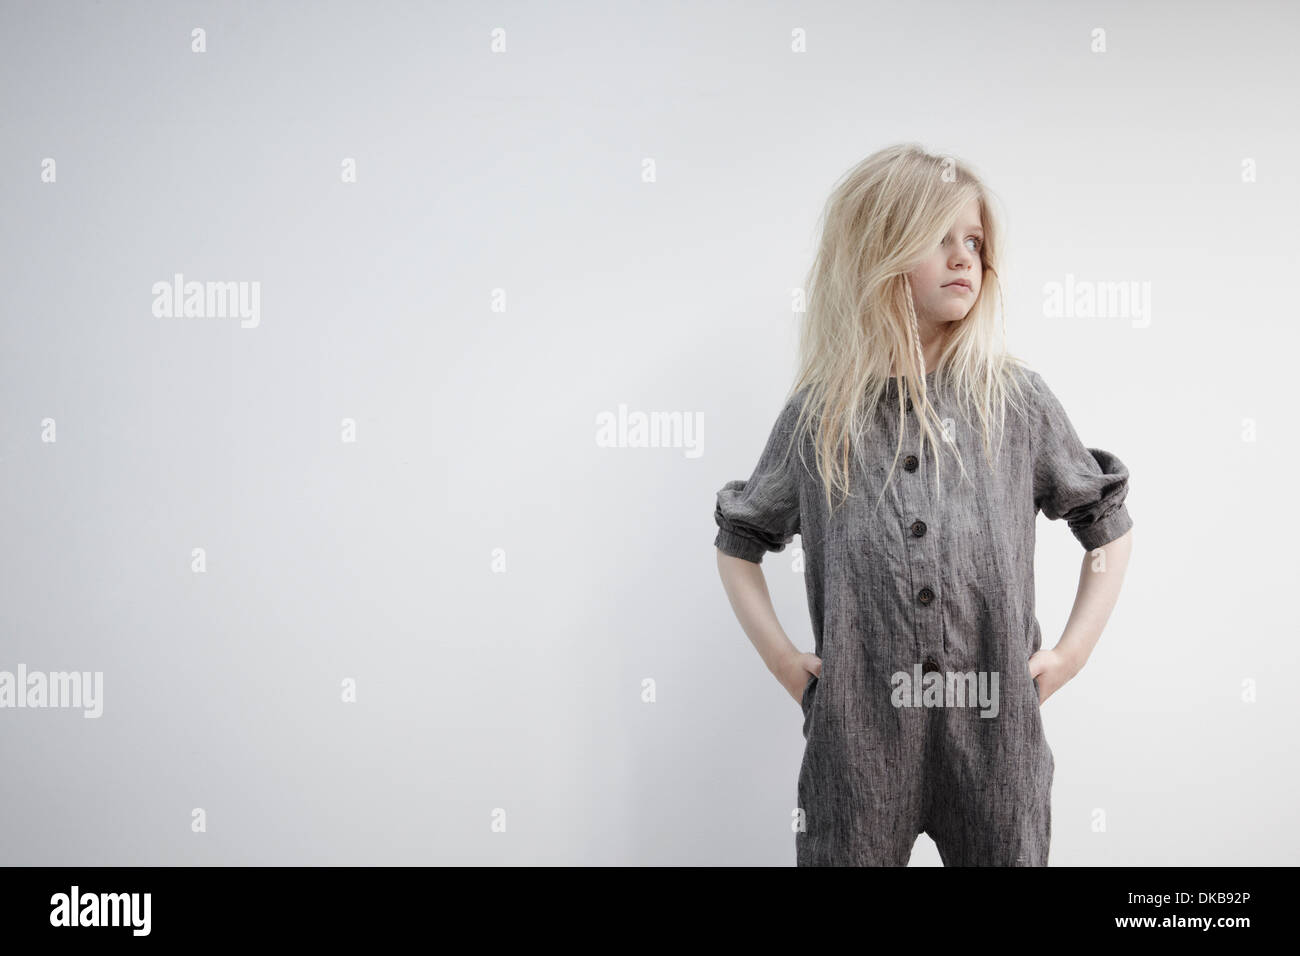 Portrait of girl with hands on hips - Stock Image